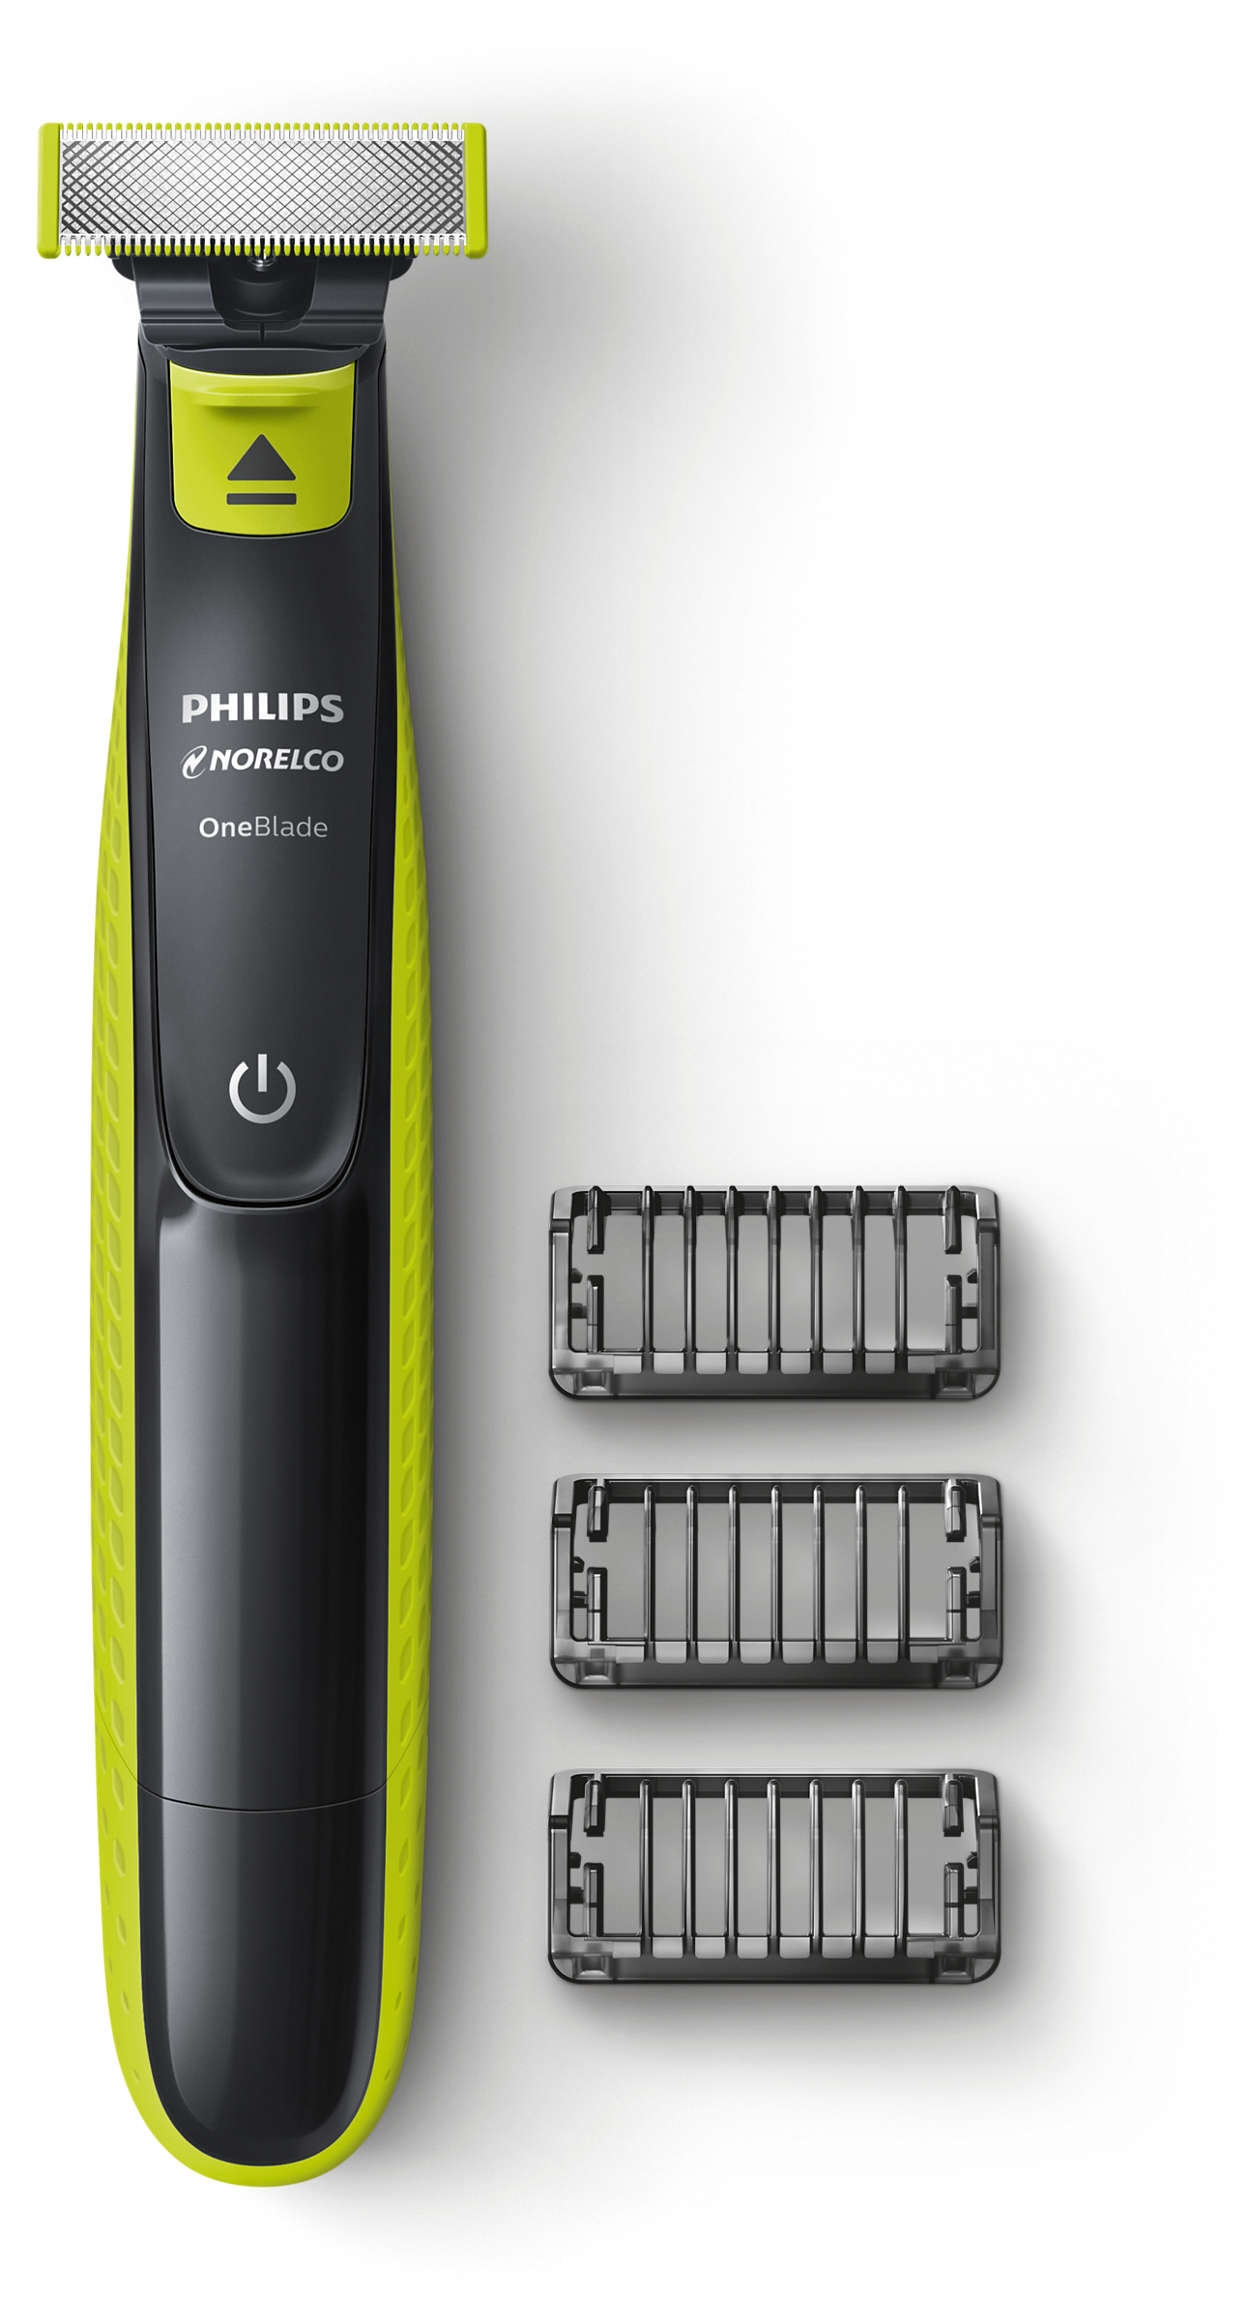 Philips Norelco Oneblade Hybrid Electric Trimmer And Shaver Qp2520 Phillips 7 Way Wiring Diagram 70